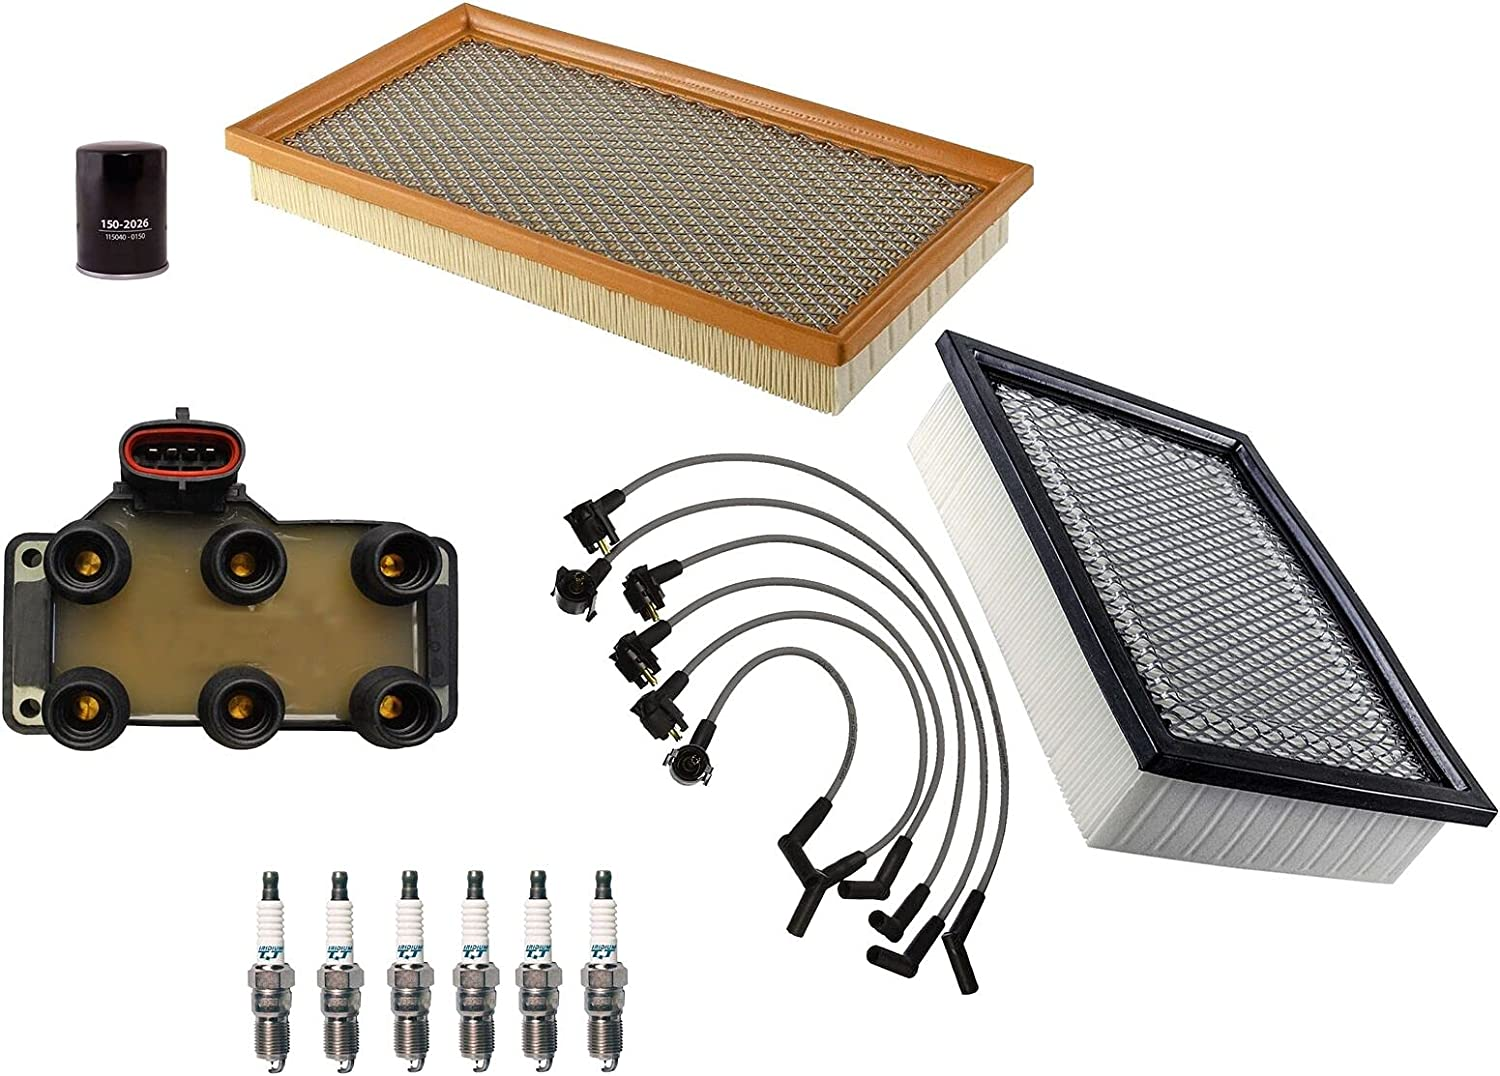 Filters Wires Baltimore Mall 6 Spark Plugs Ranking TOP1 Tune Ford with Up Compatible kit